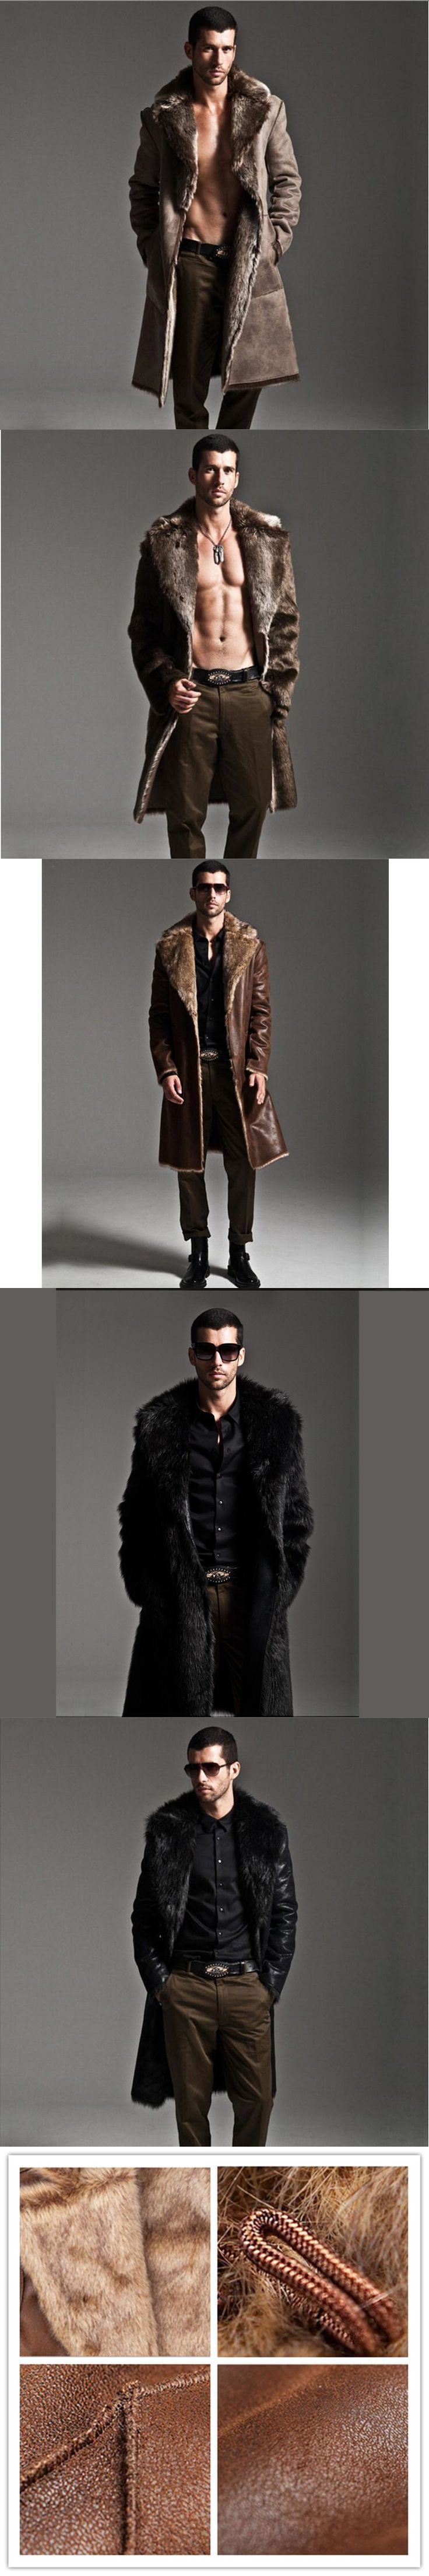 Winter mink fur coat men thickening faux fur leather overcoat high quality fashion man trench leather jacket man windbreaker 5XL